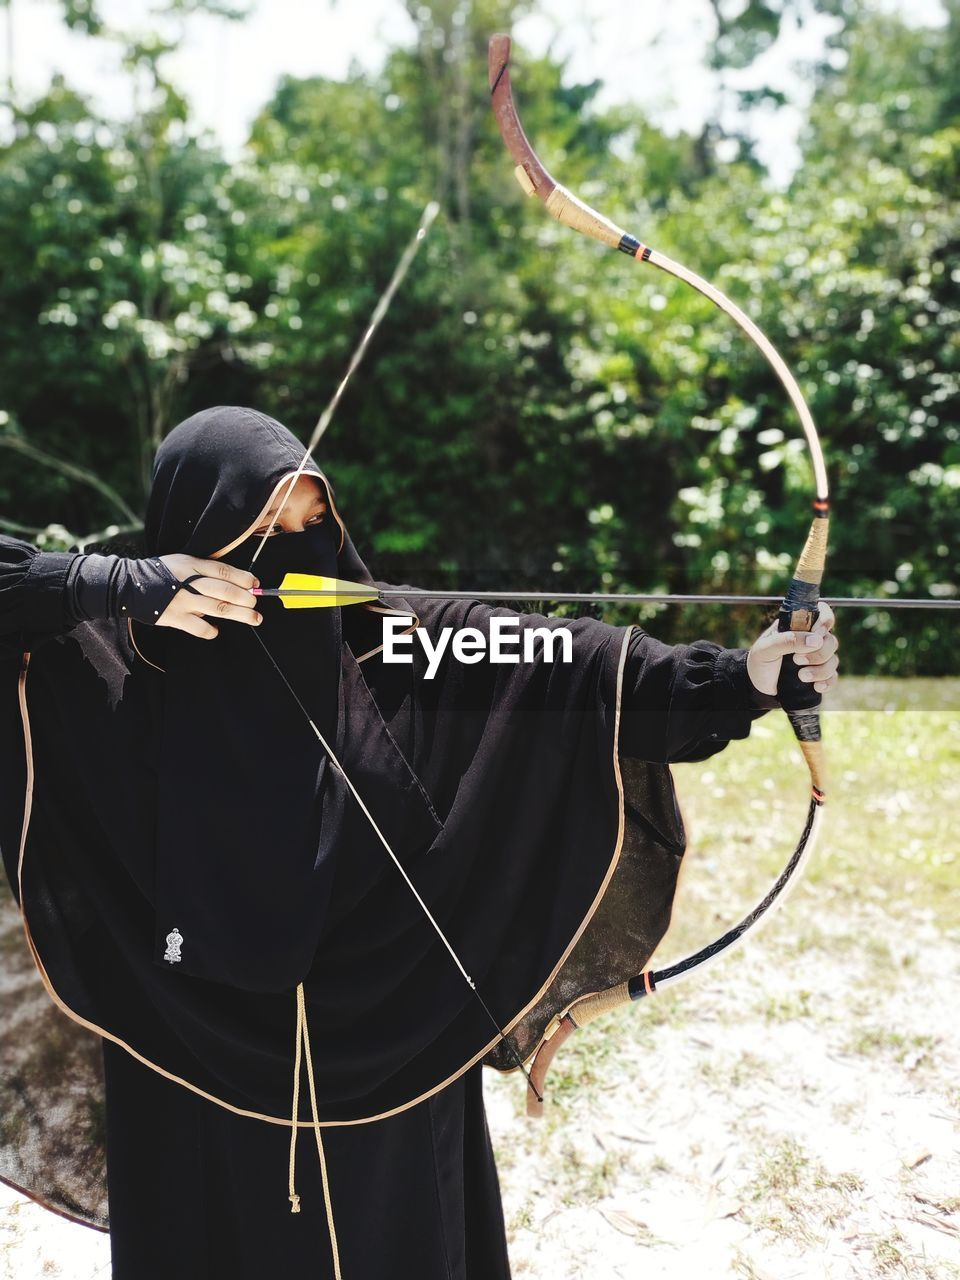 Woman Aiming With Archery On Field